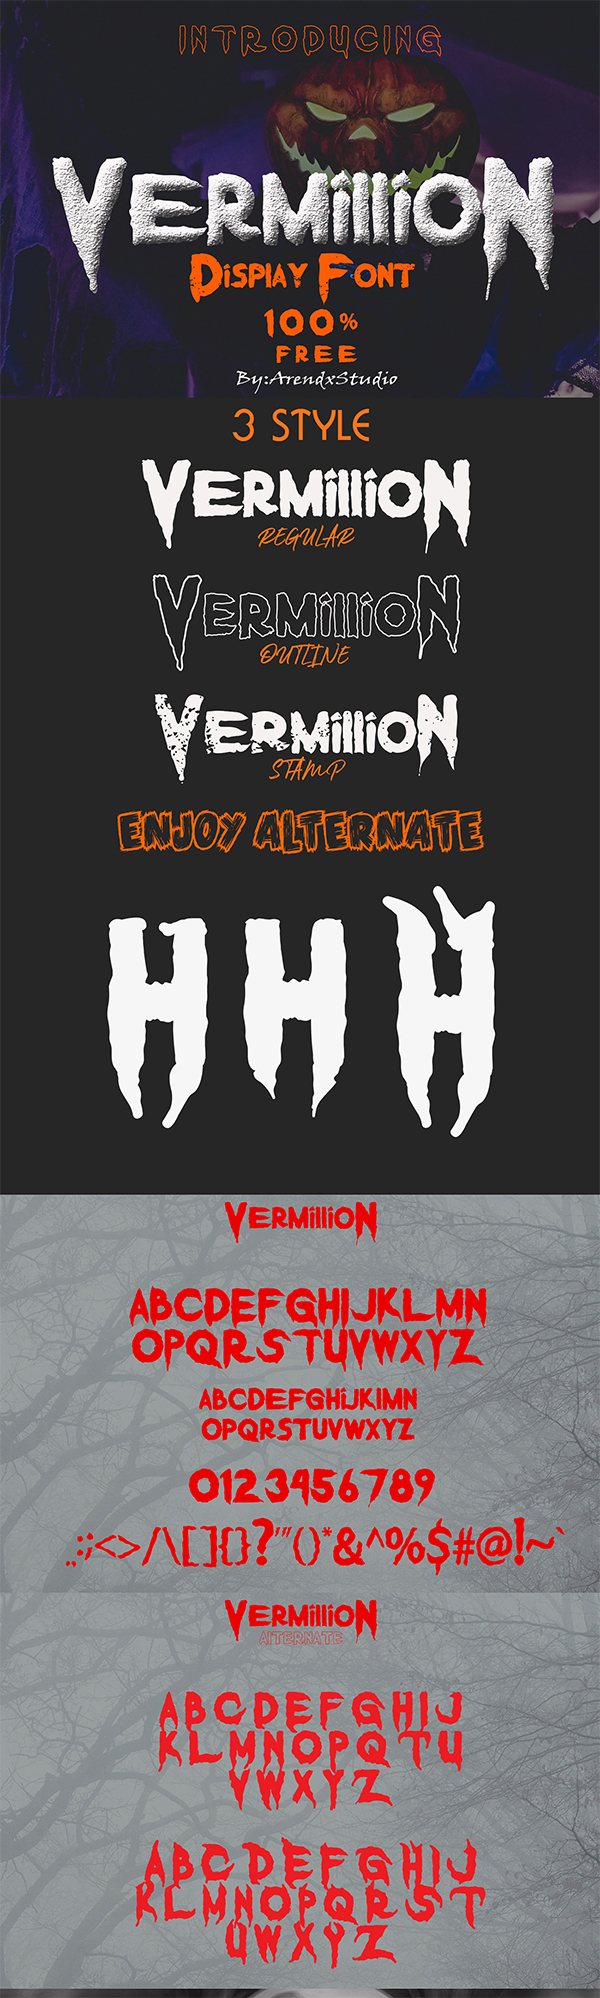 Vermillion Display Free Font